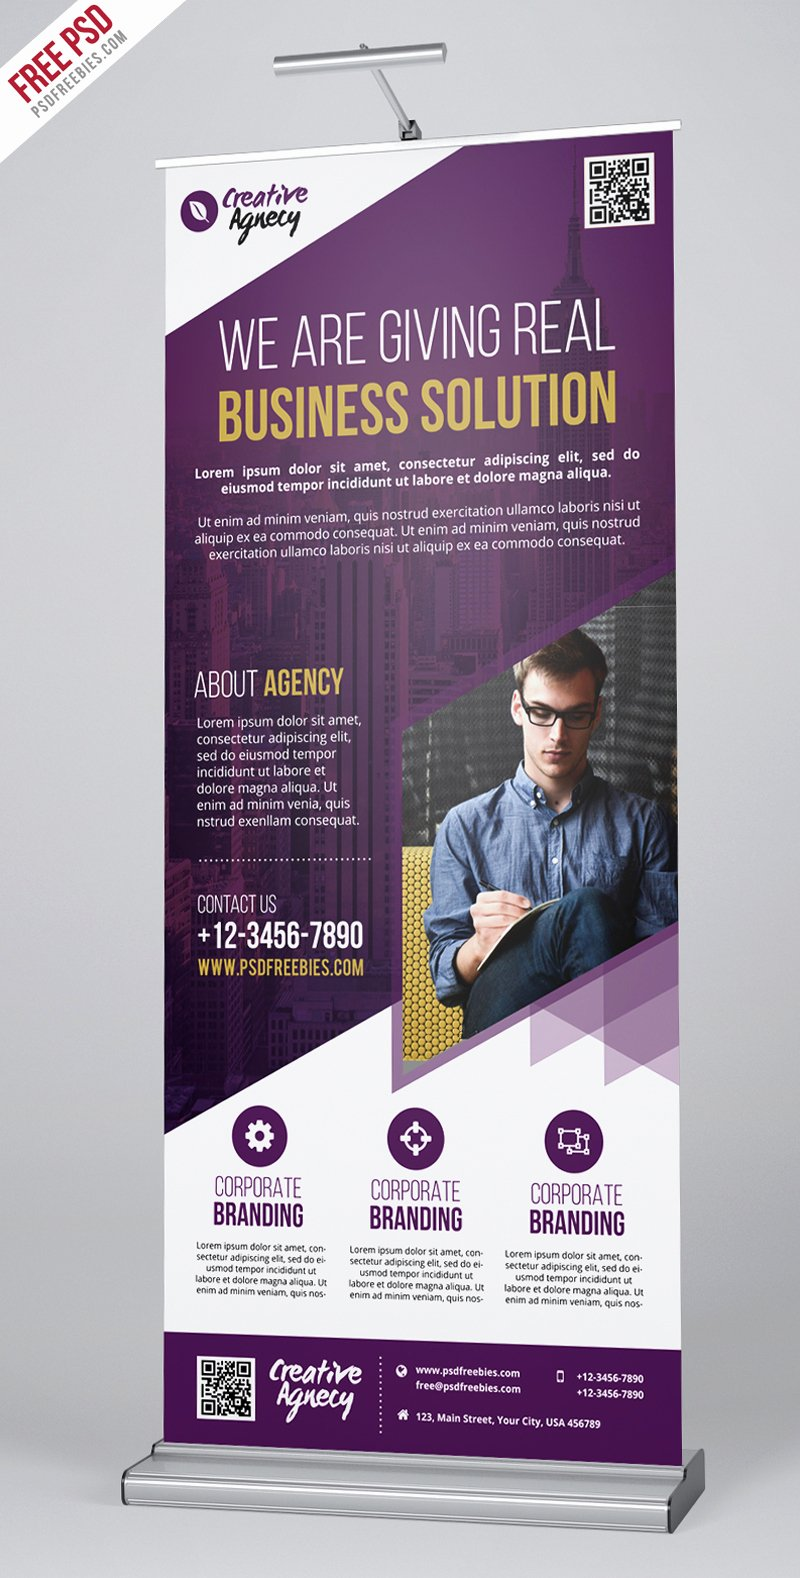 Retractable Banner Template Psd Inspirational Free Psd Creative Agency Roll Up Banner Psd Template On